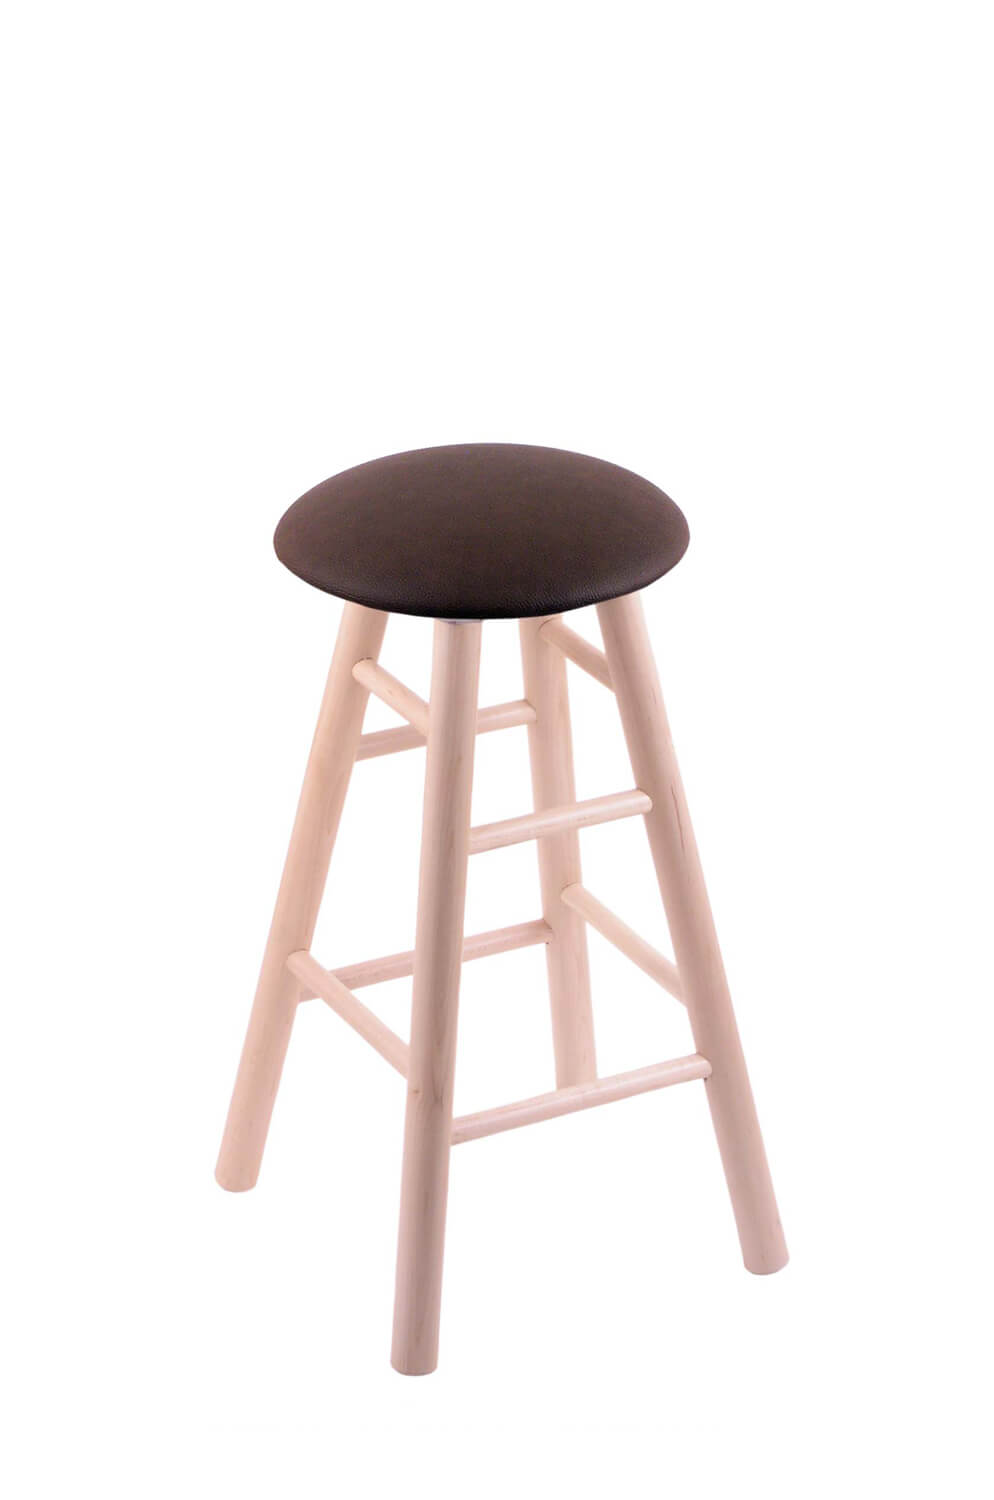 Hollands round cushion swivel backless wooden barstool in natural and rein coffee vinyl